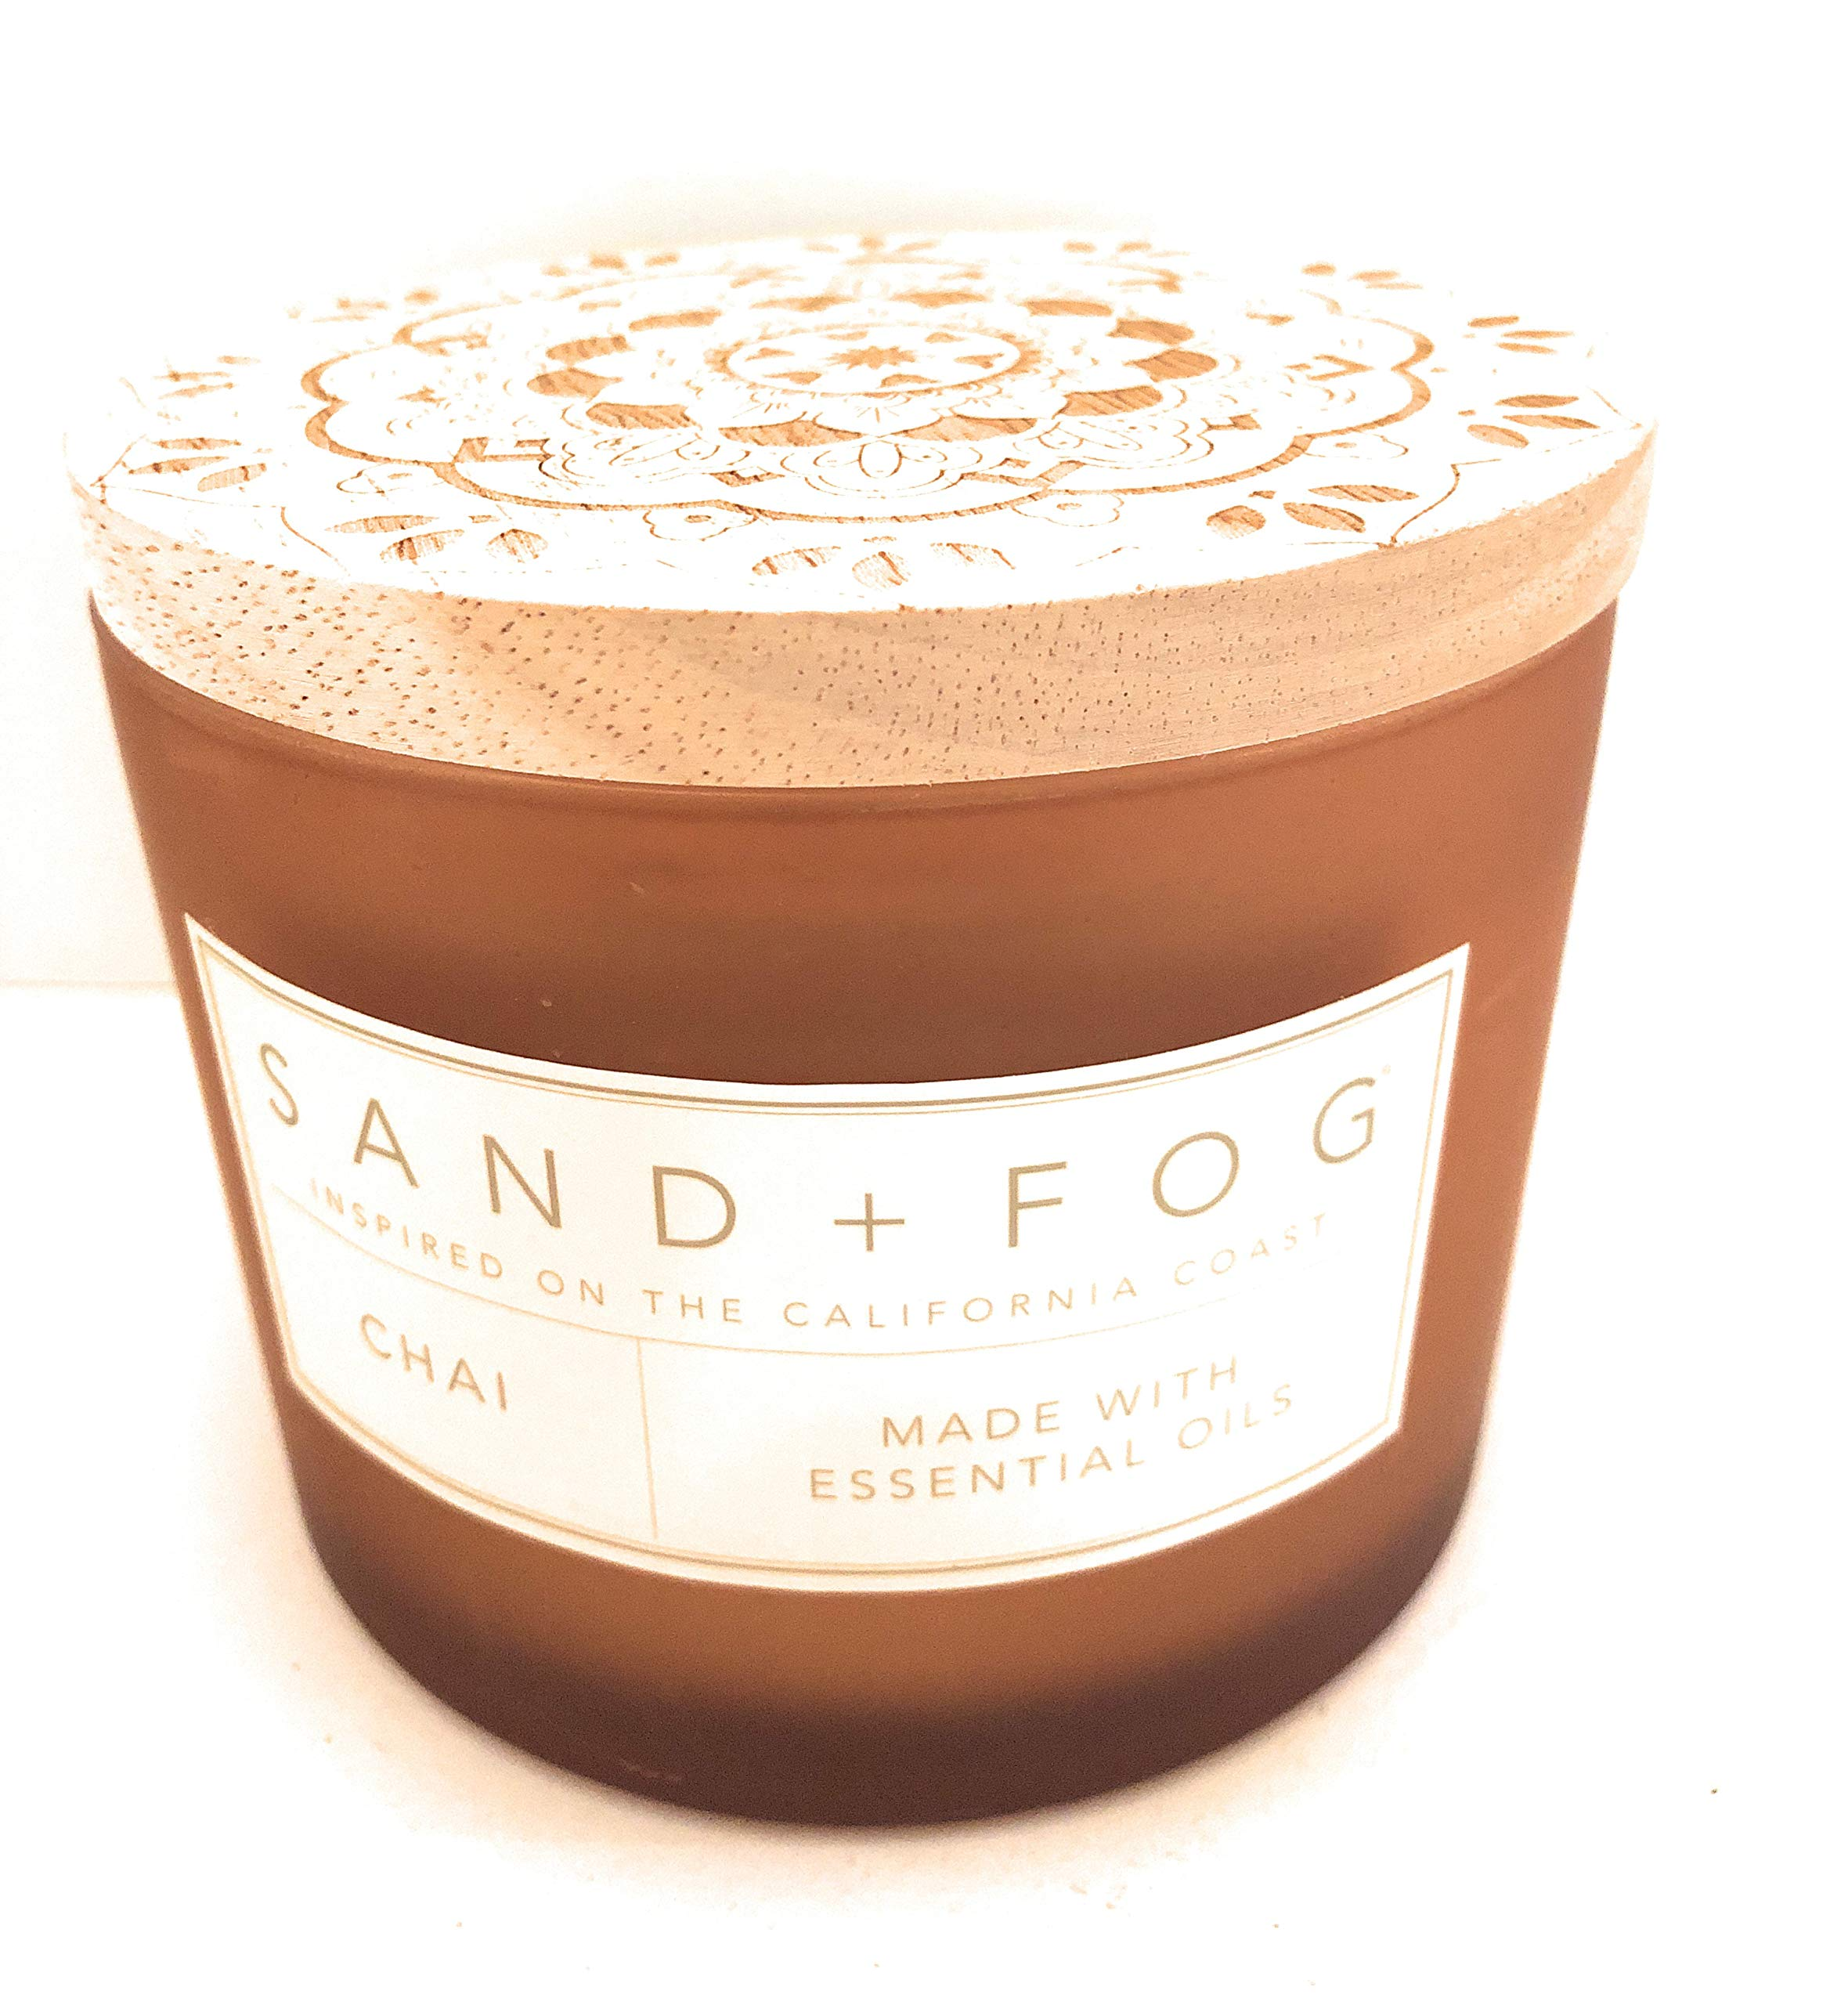 Sand And Fog Chai Double Wick Essential Oils Candle with Lid 12 oz